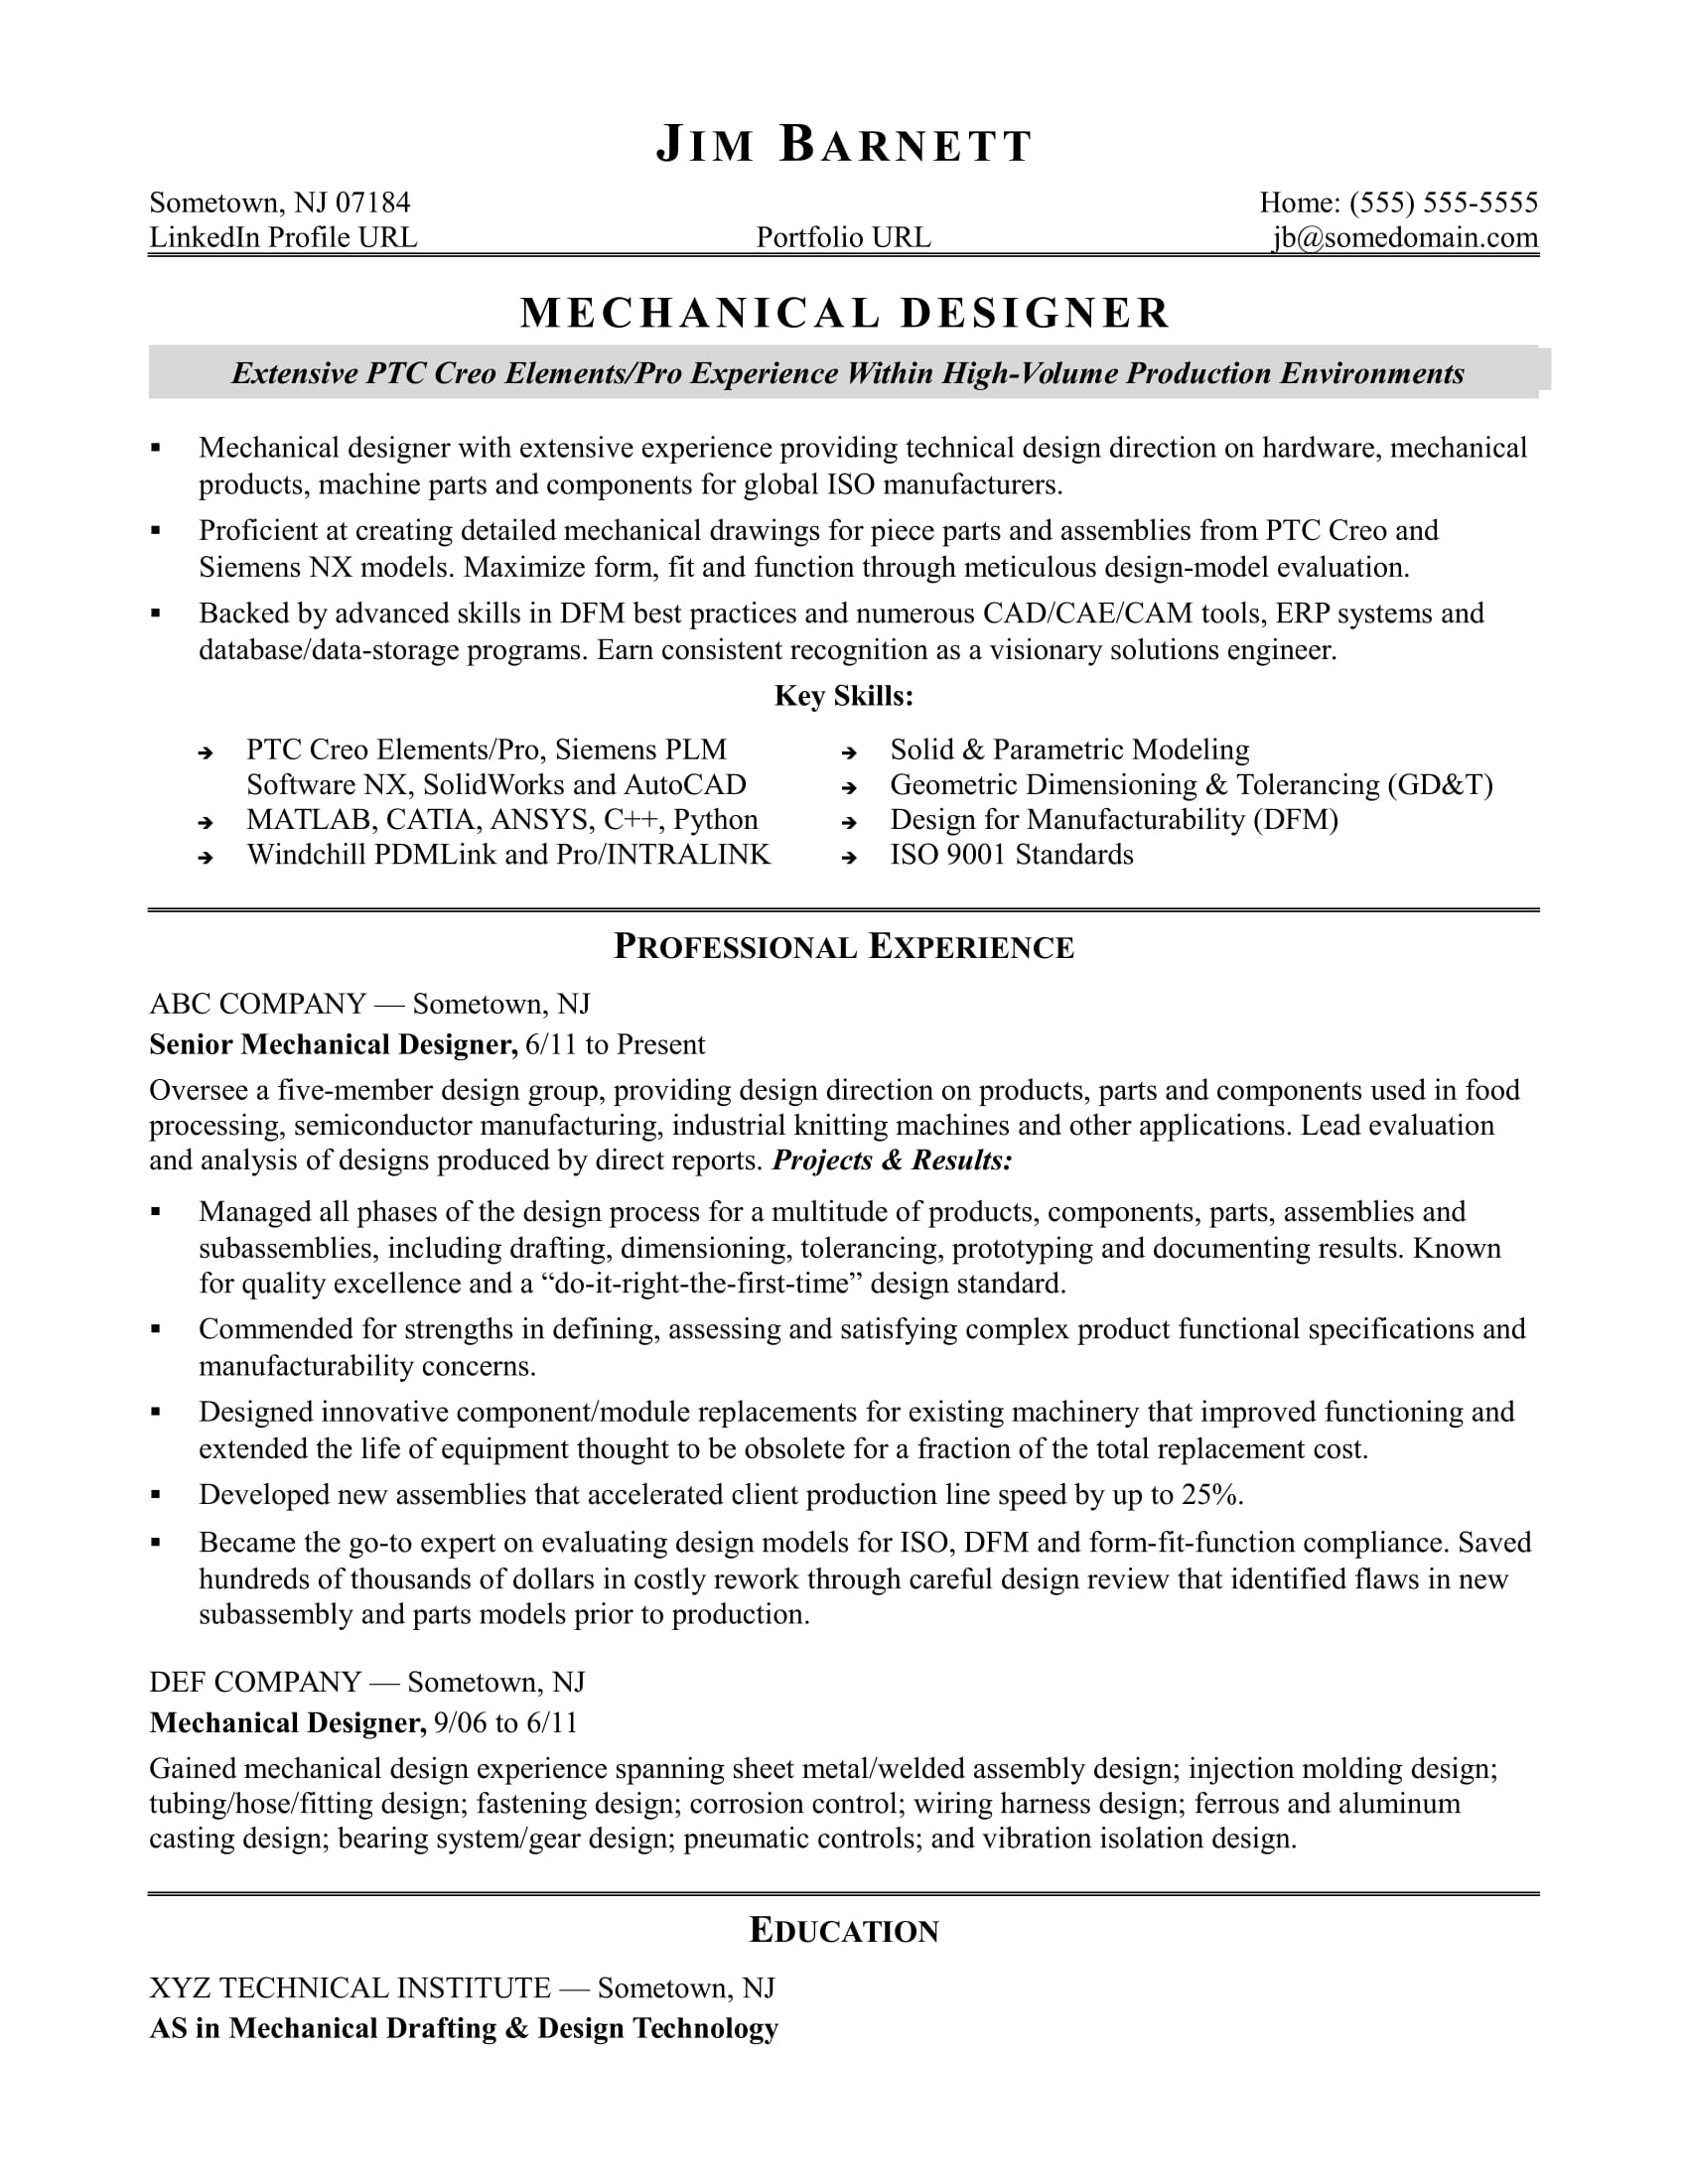 sample resume for an experienced mechanical designer - Mechanical Design Engineer Resume